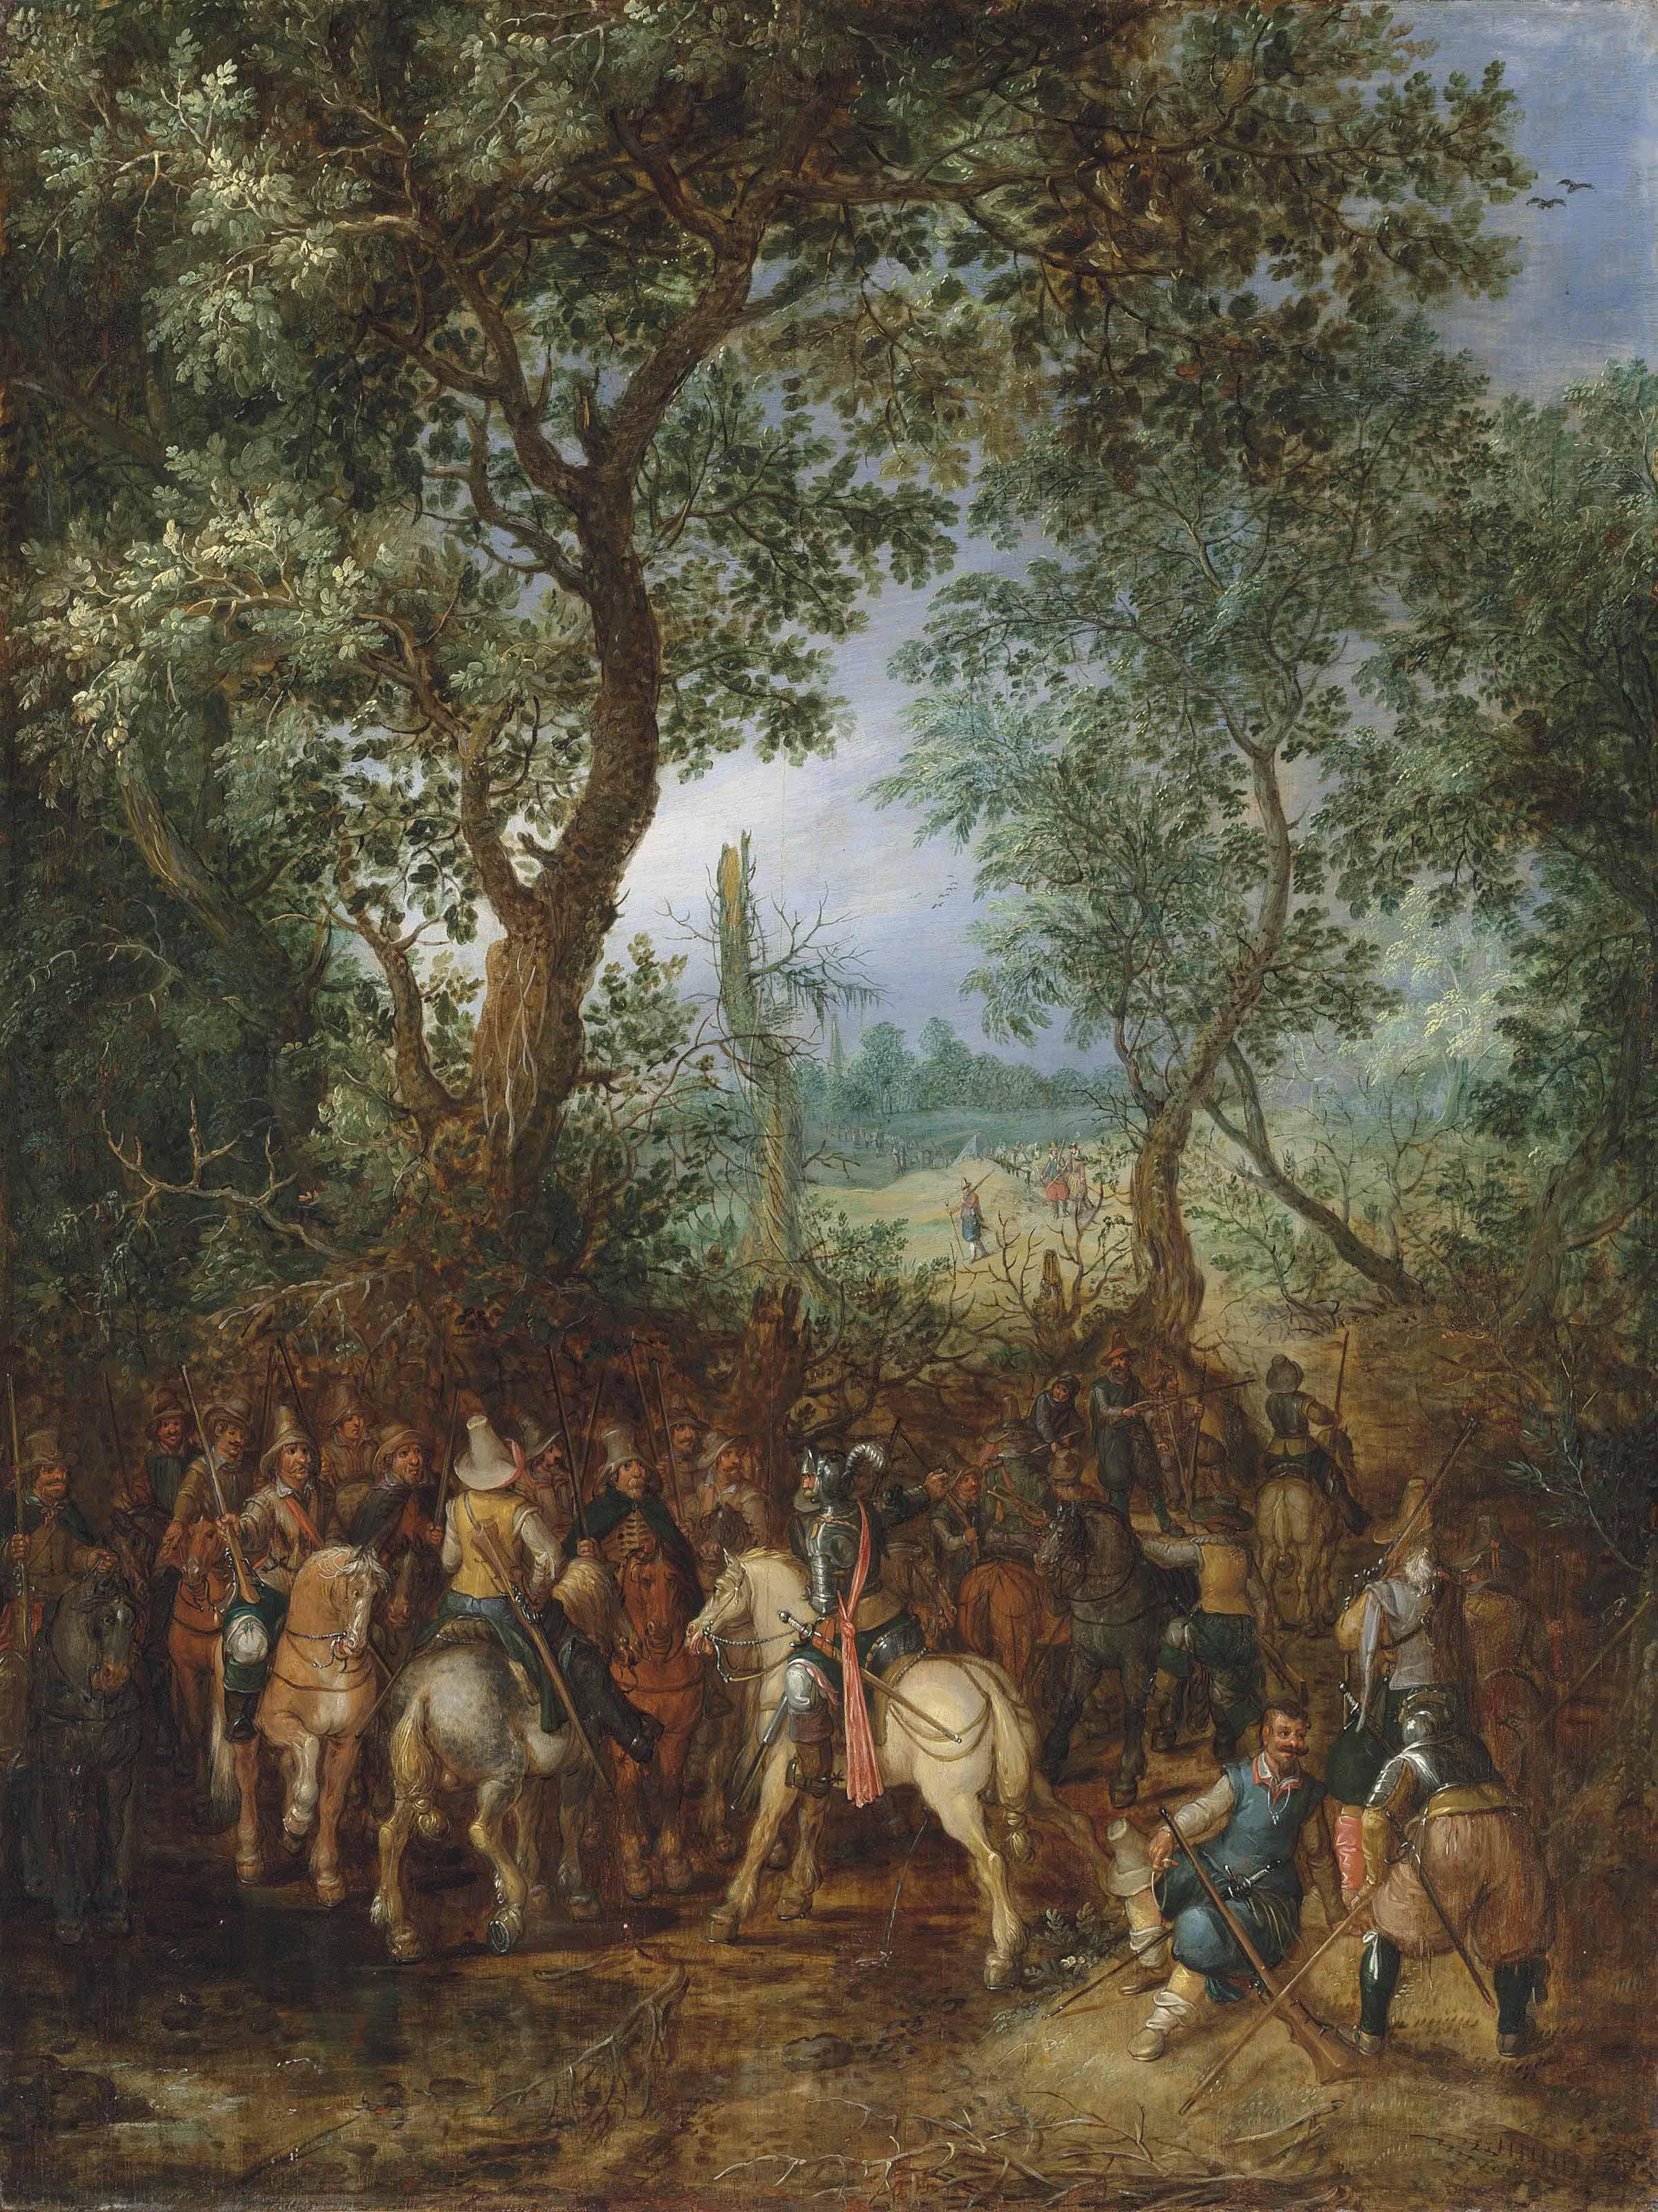 A wooded landscape with cavaliers at the edge of a forest preparing an ambush